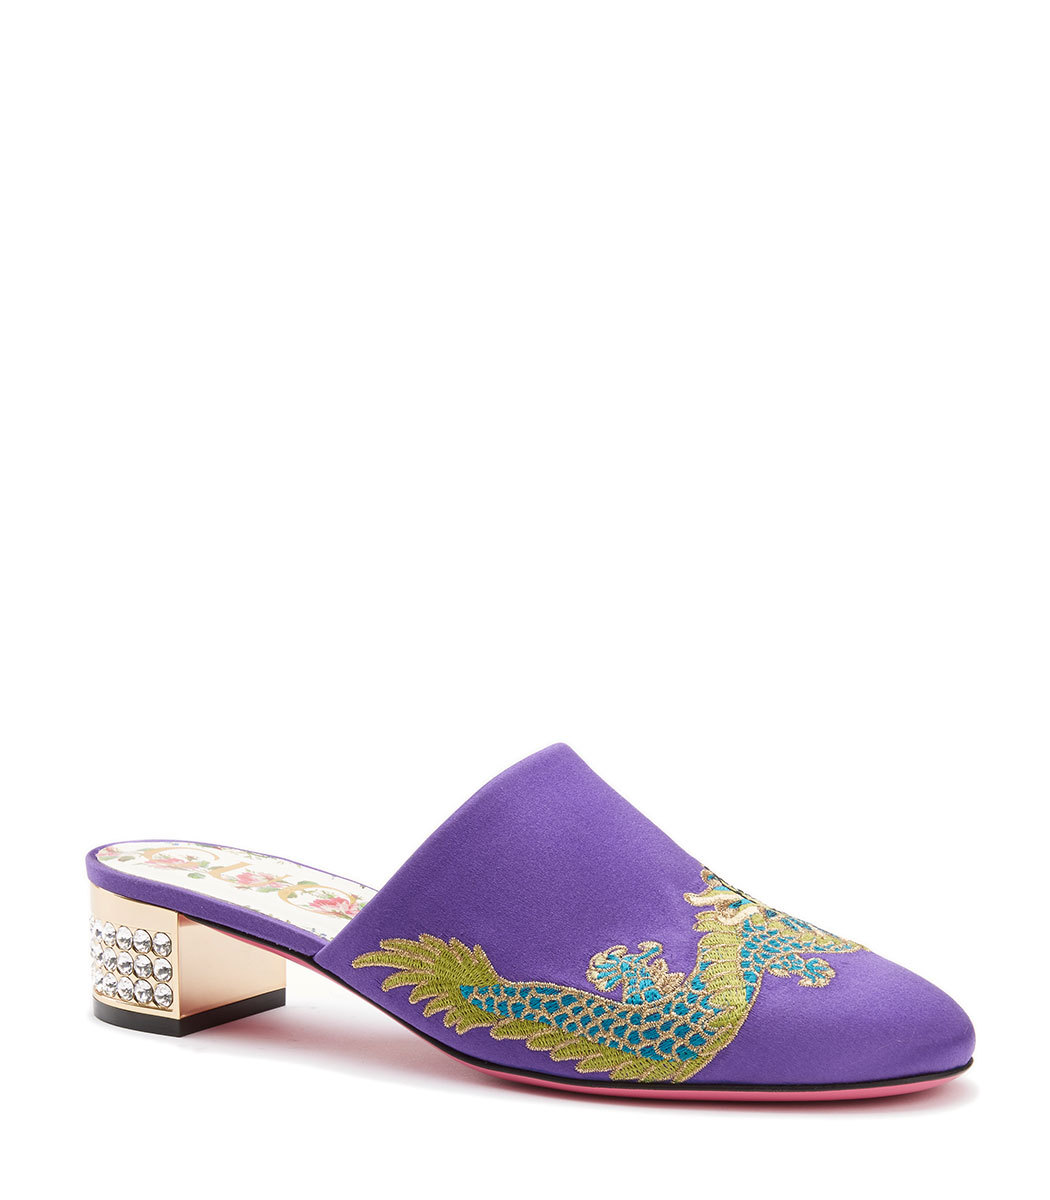 35MM EMBROIDERED DRAGON SATIN MULES